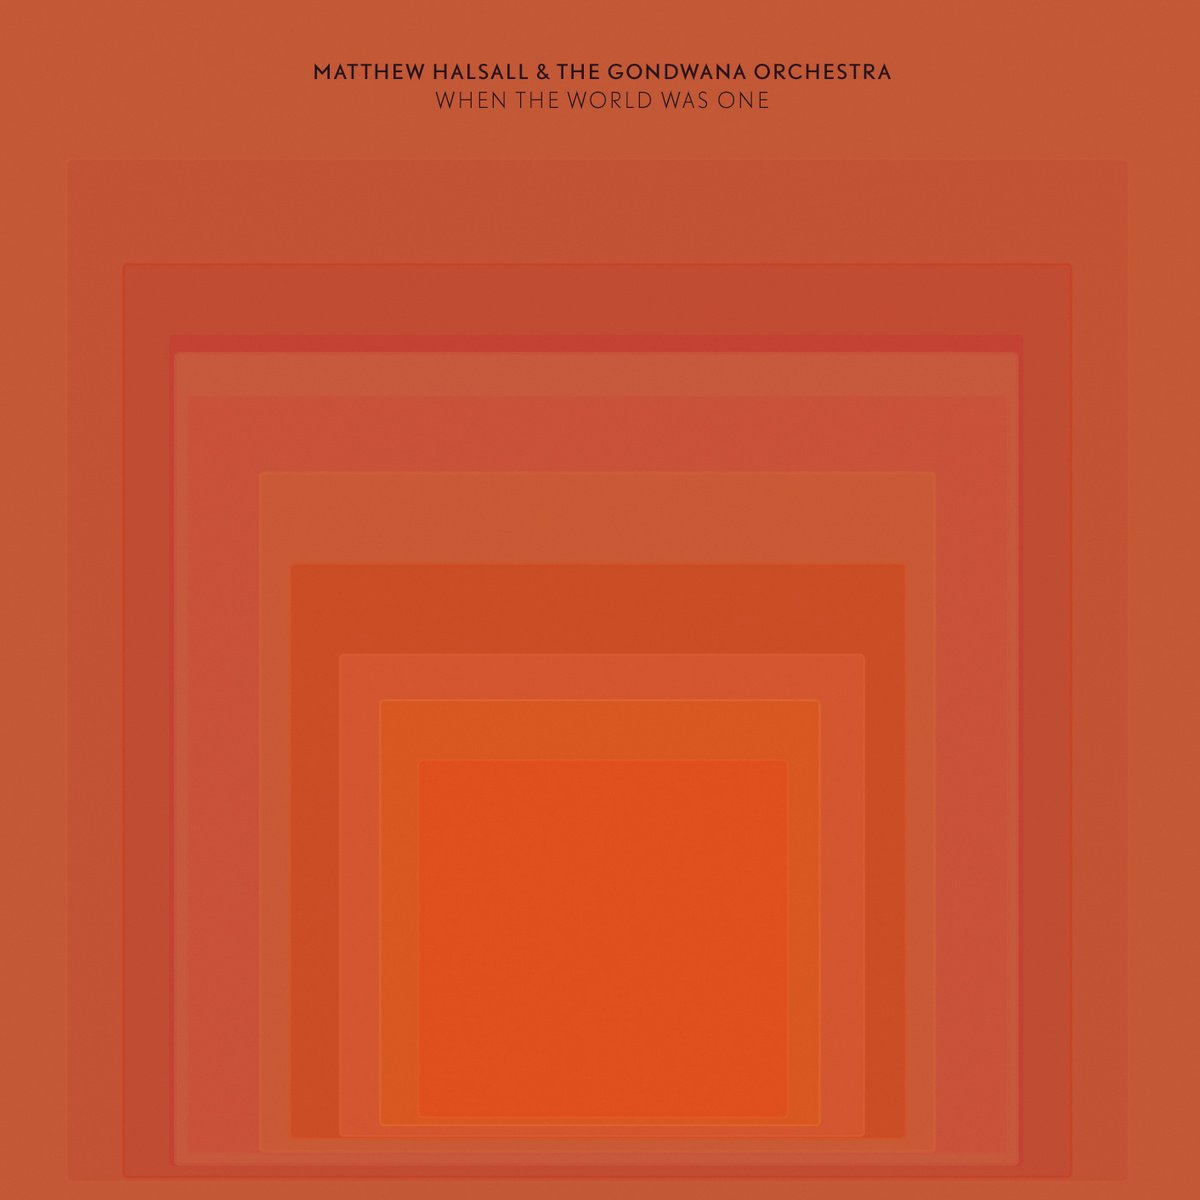 Matthew Halsall & The Gondwana Orchestra - When the World was One (2014)